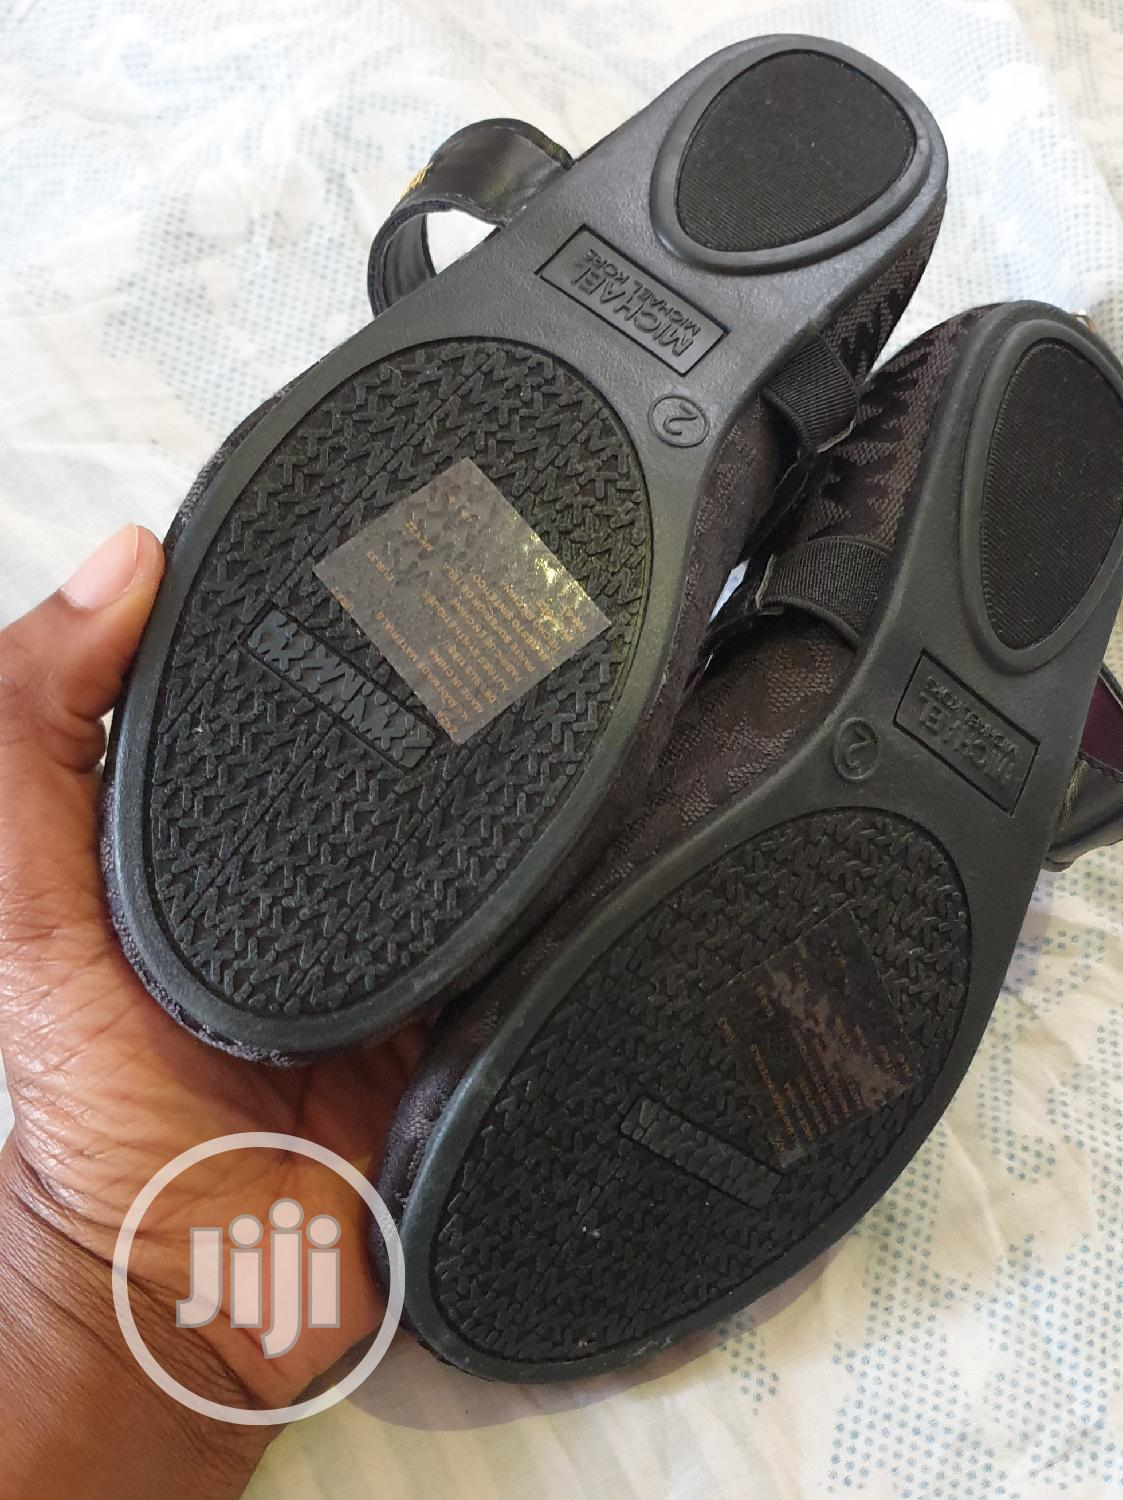 Micheal Kors Flats For Girls   Children's Shoes for sale in Lekki Phase 1, Lagos State, Nigeria